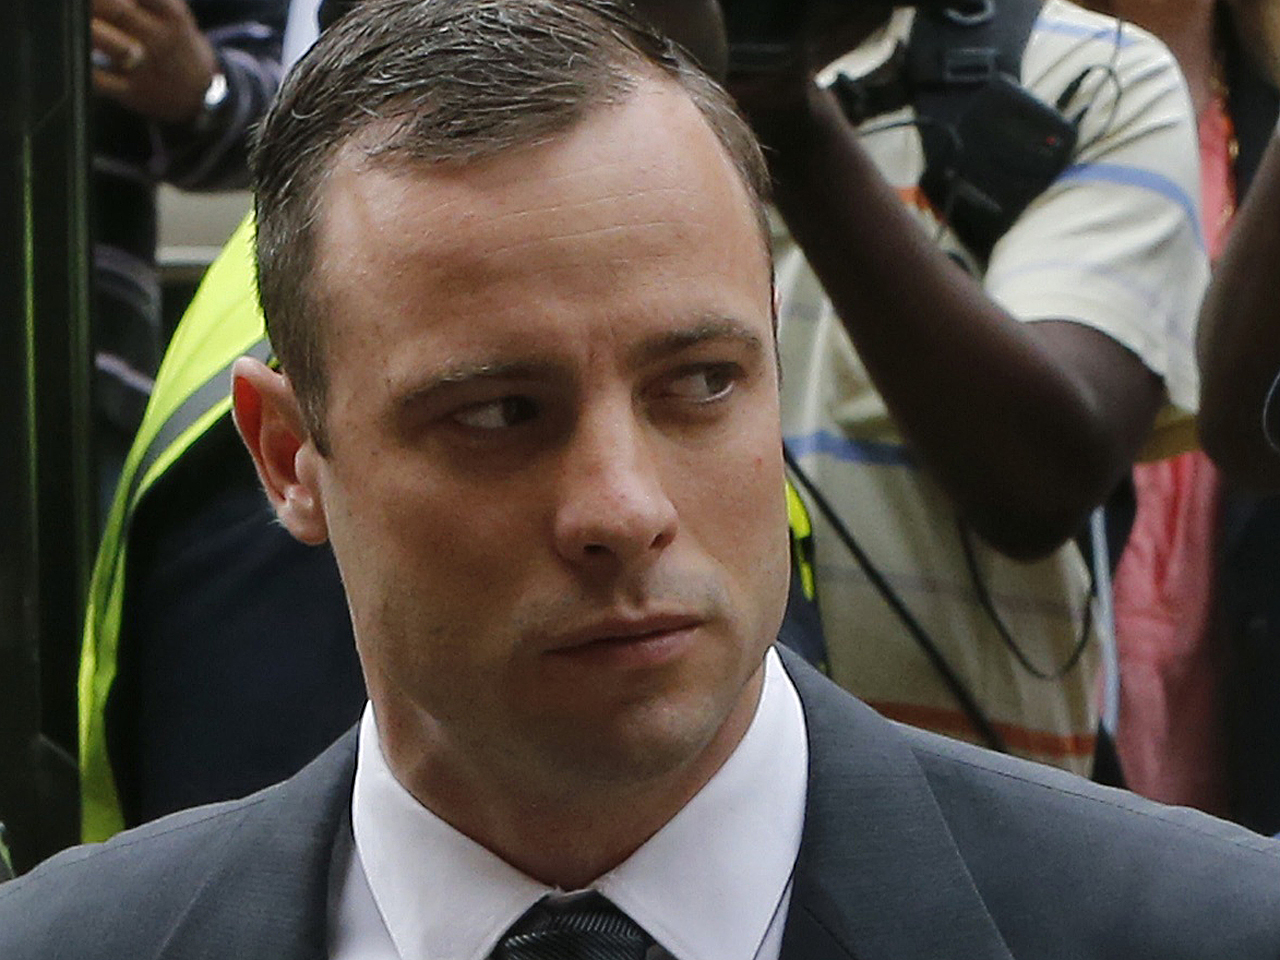 Pistorius Appeal Verdict Thursday also Best Properties Houses Rock Stars besides Oscar Pistorius Gets Little Sympathy Steenk  Family And Friends further Darlie Routier Are There Any Reasonable Doubts Jan 30 2016 together with Prosecutors To Appeal Verdict And Sentence Given To Oscar Pistorious. on oscar pistorius appeal verdict